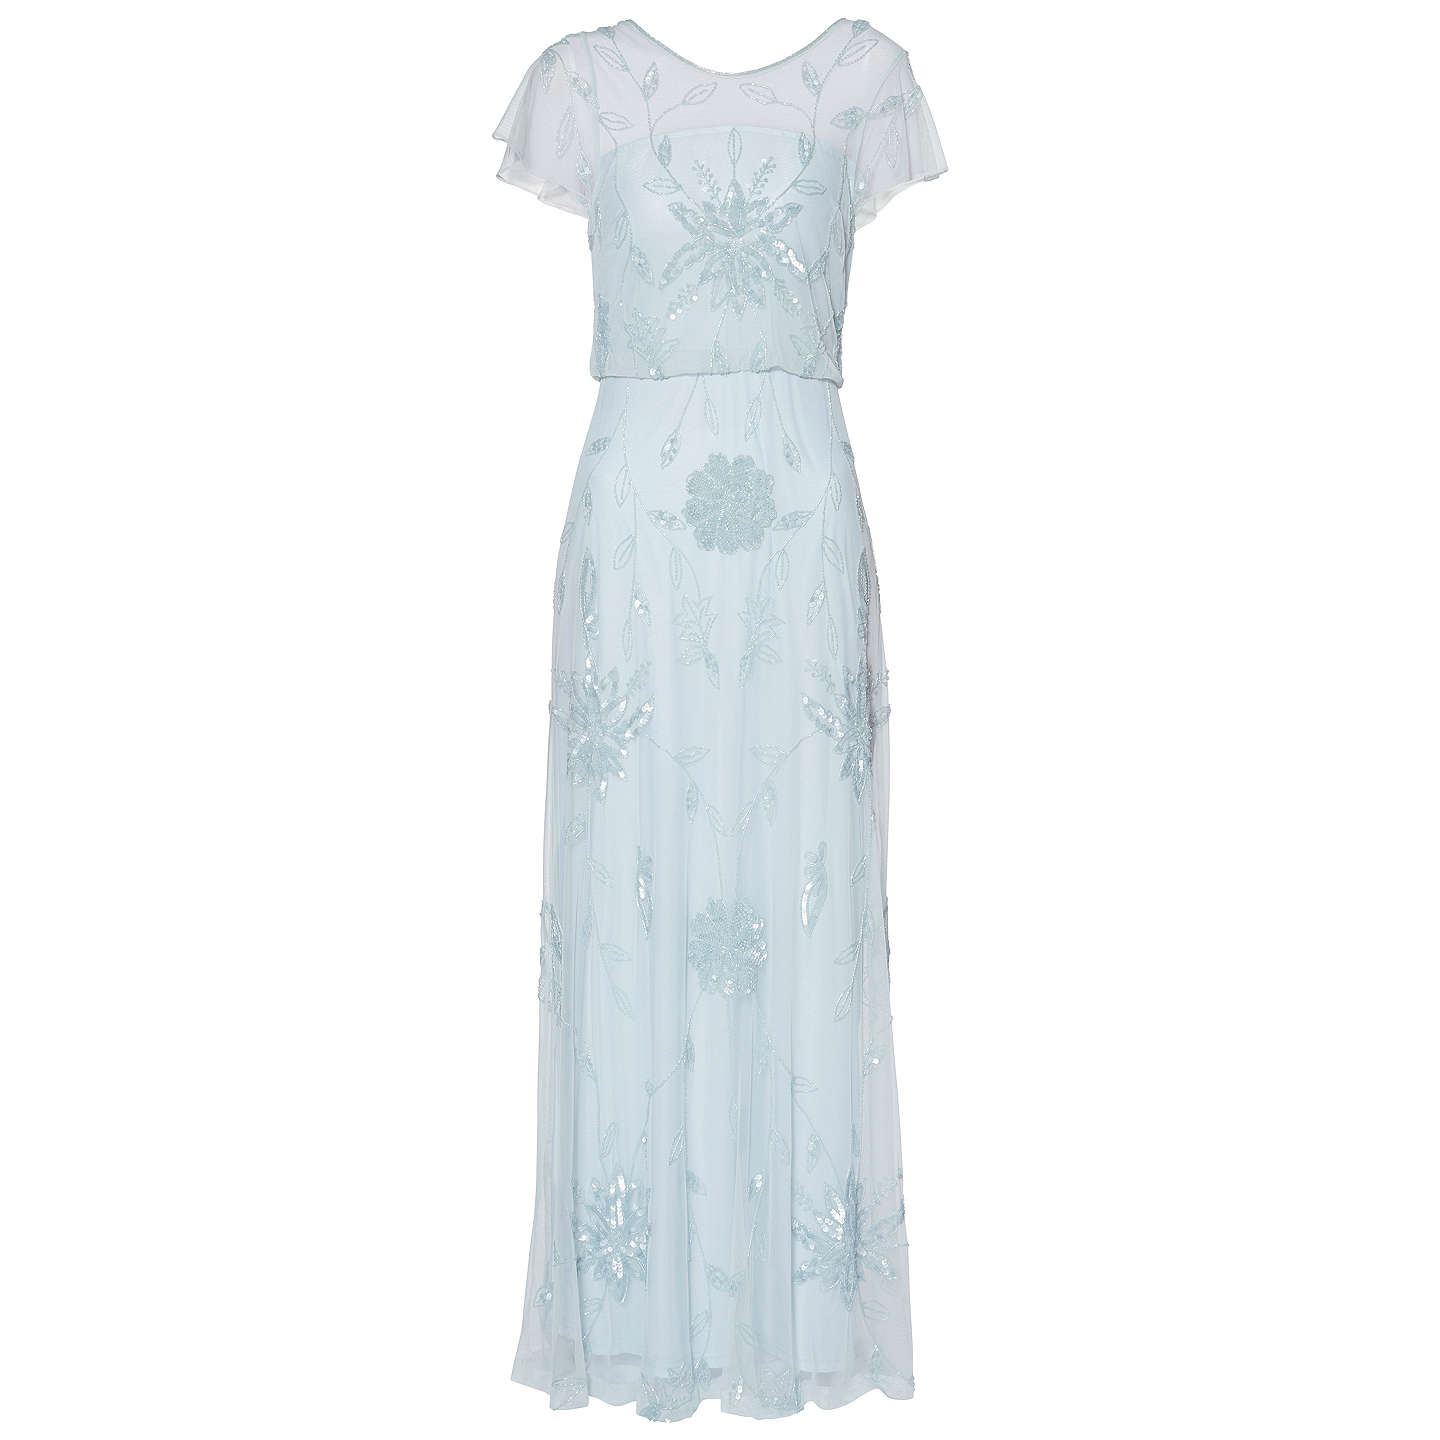 BuyGina Bacconi Niobe Beaded Maxi Dress, Blue Pearl, 8 Online at johnlewis.com